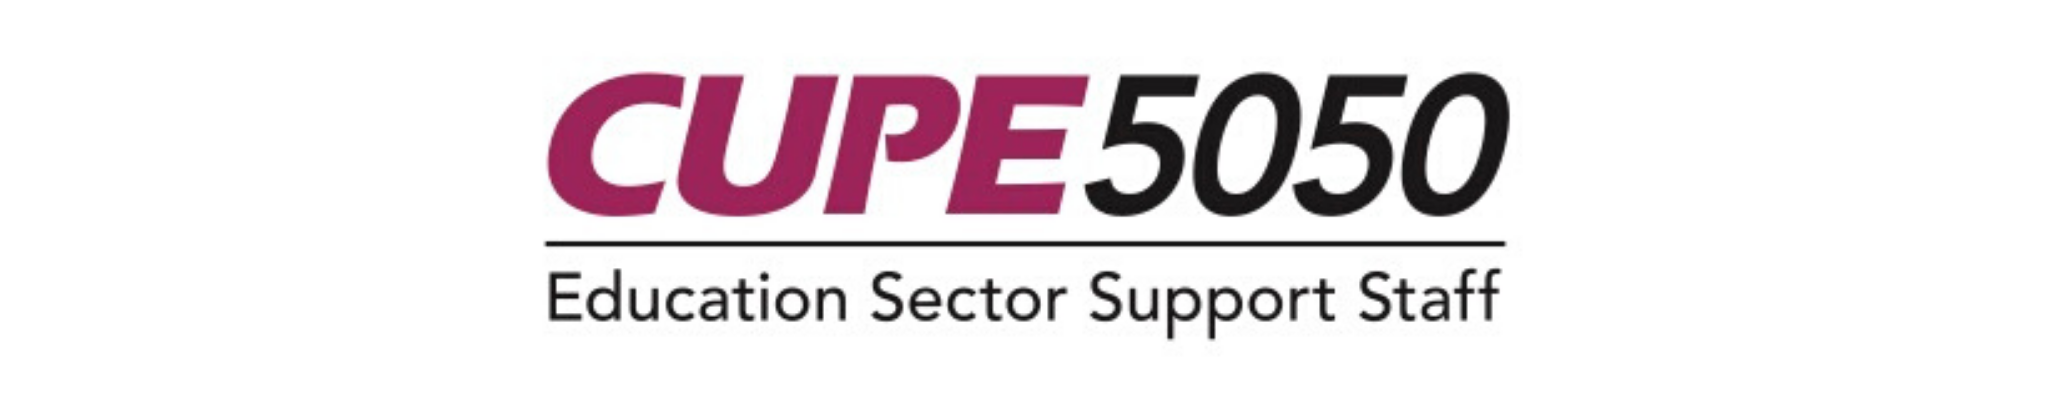 CUPE 5050